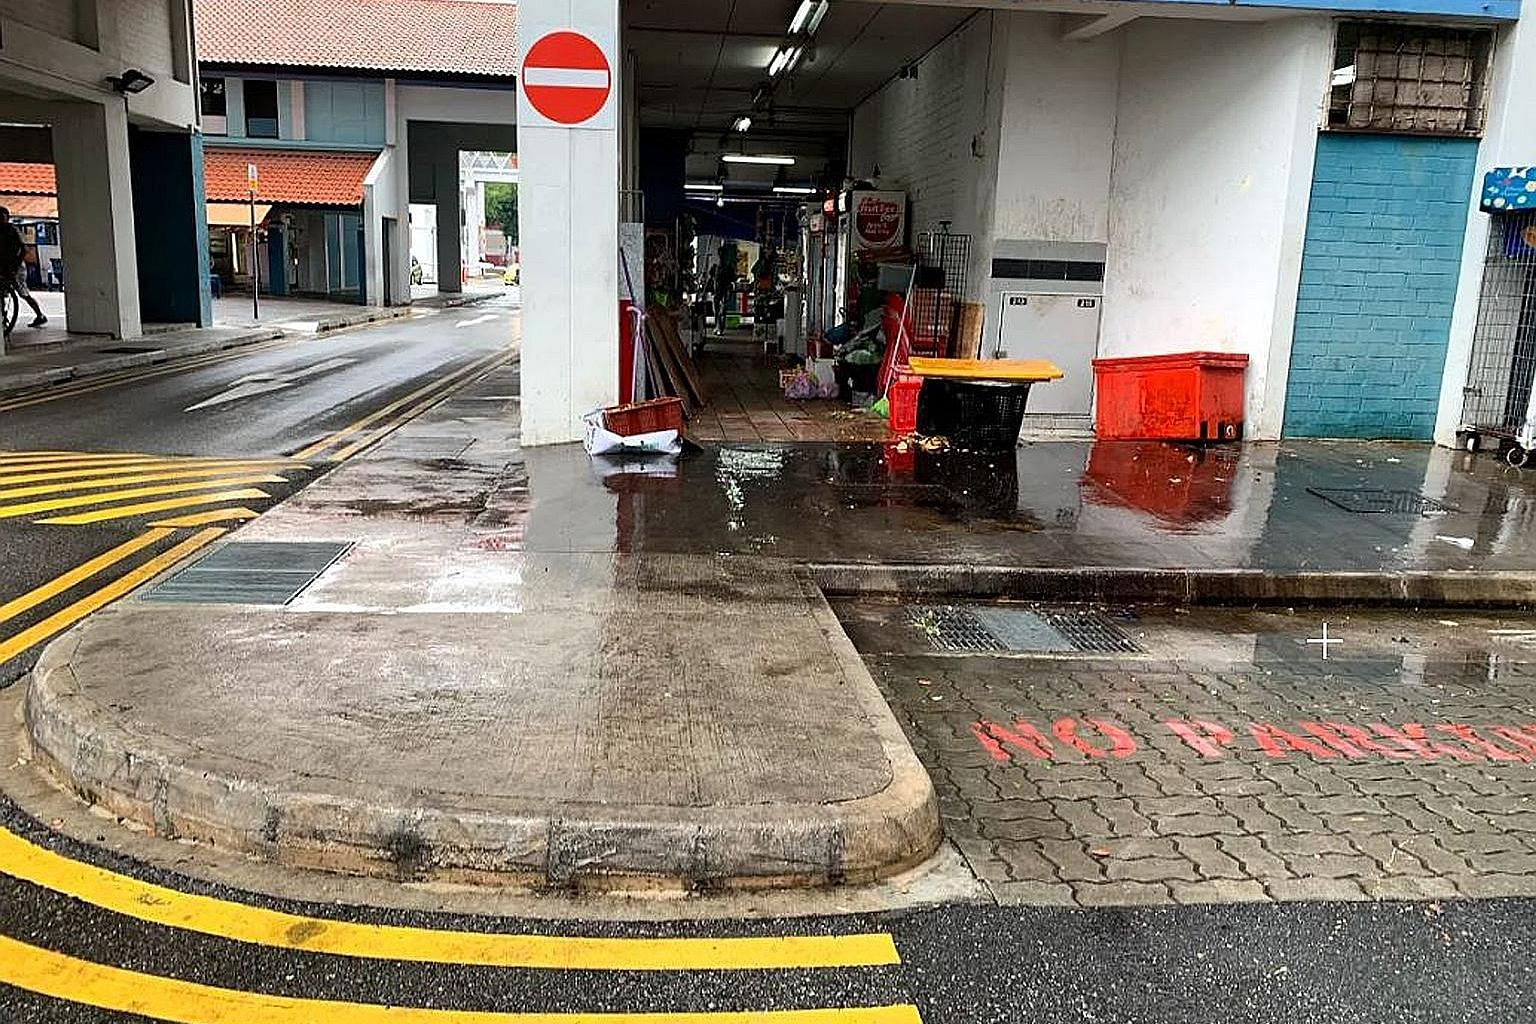 A refuse collection area near Block 966 Jurong West Street 93, where a witness saw the victim fall to the ground during a scuffle with another man. The accused has been charged with murder.